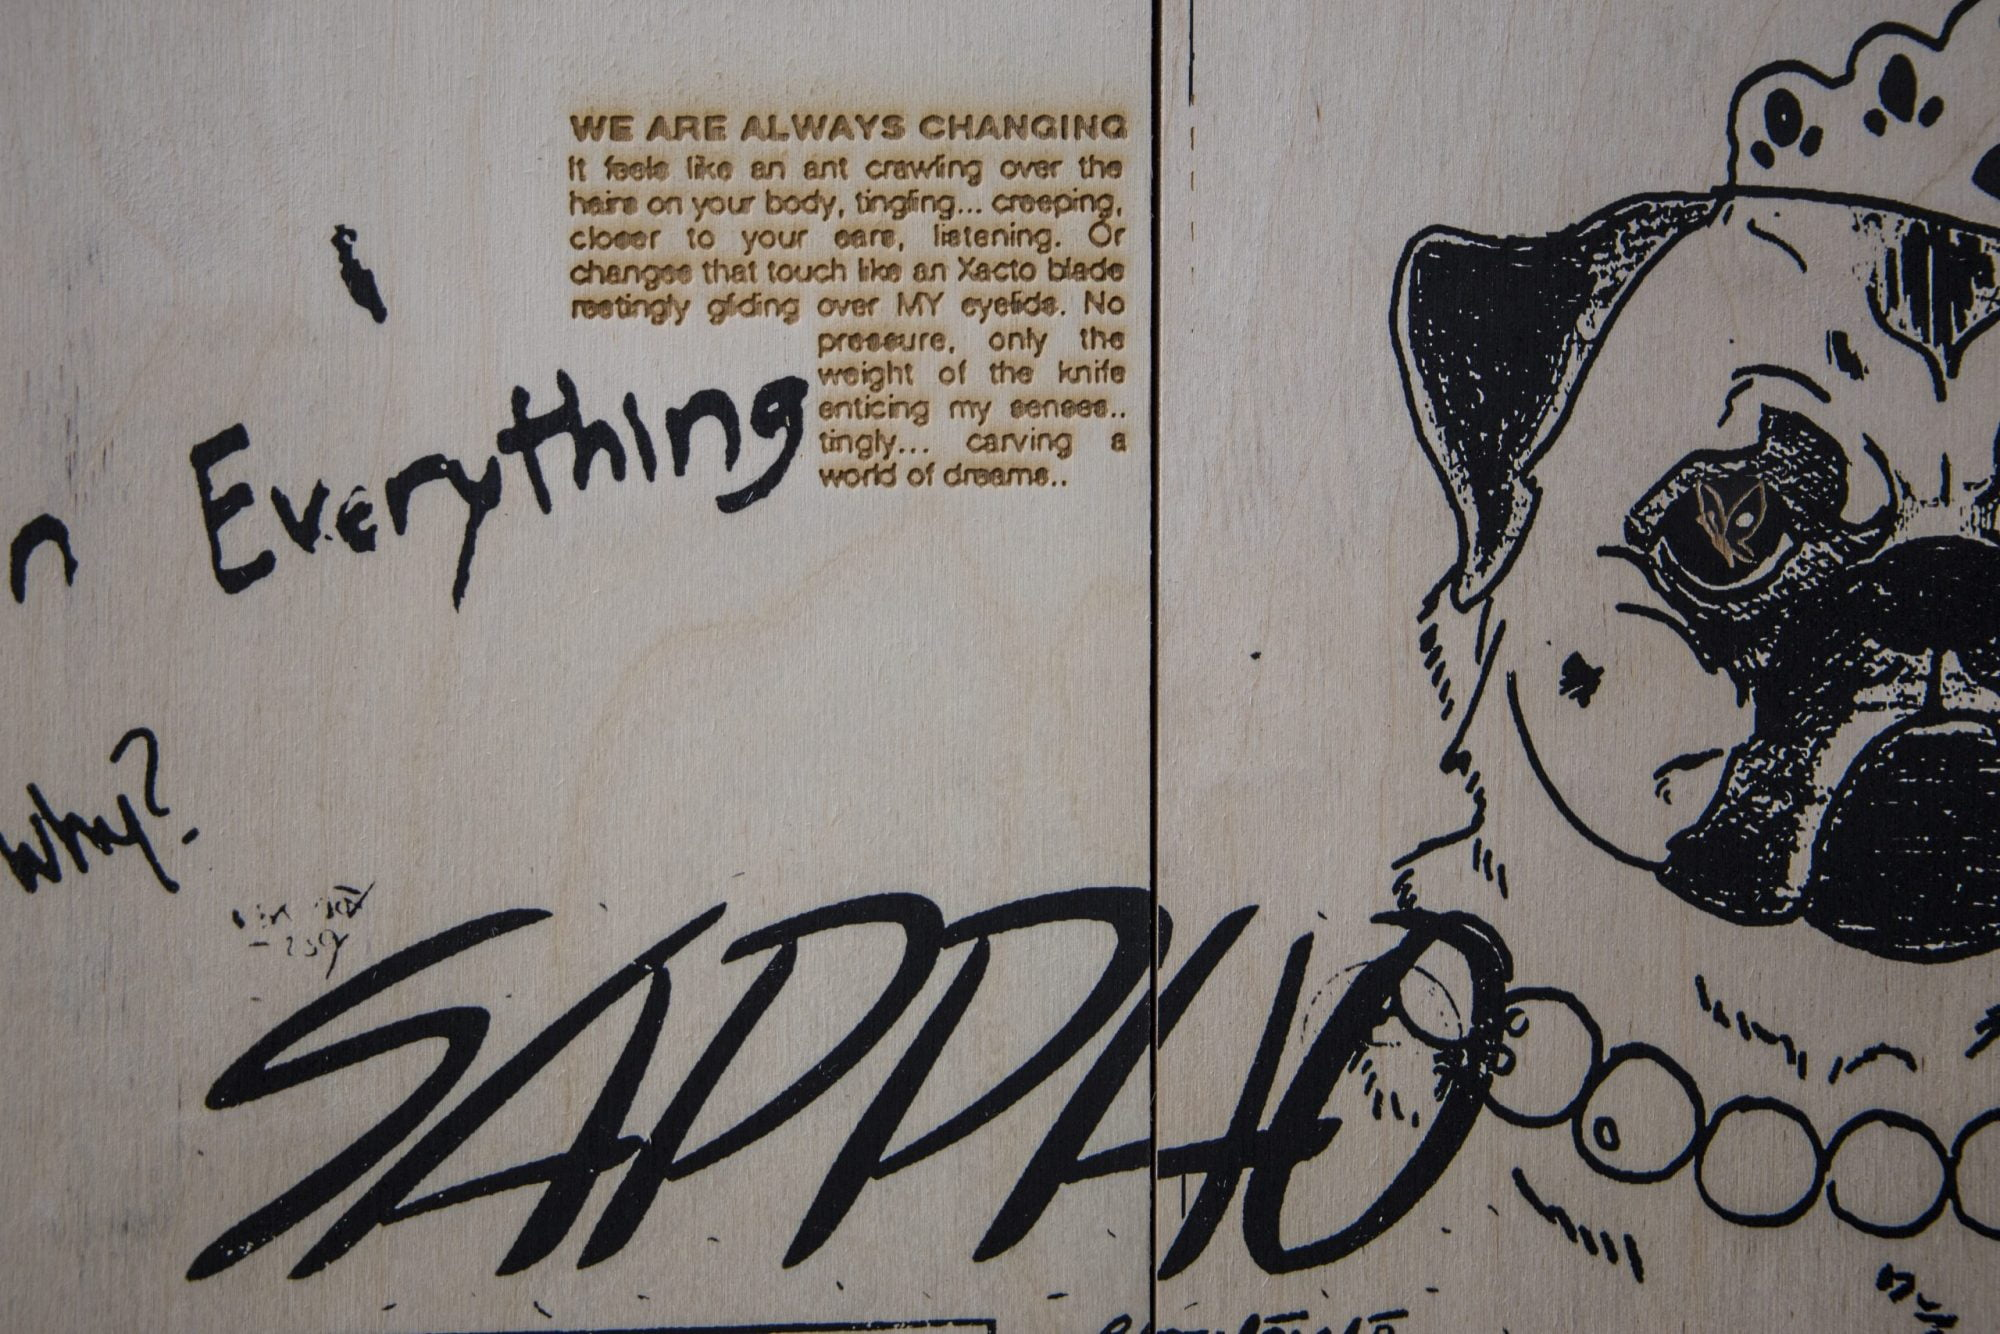 On a pale wooden surface are graffiti- style scrawls including the word SAPPHO in bold capitals as well as a pug dog in a beauty contest tiara. A few lines of text are burnt into the wood, beginning with the phrase: 'we are always changing'